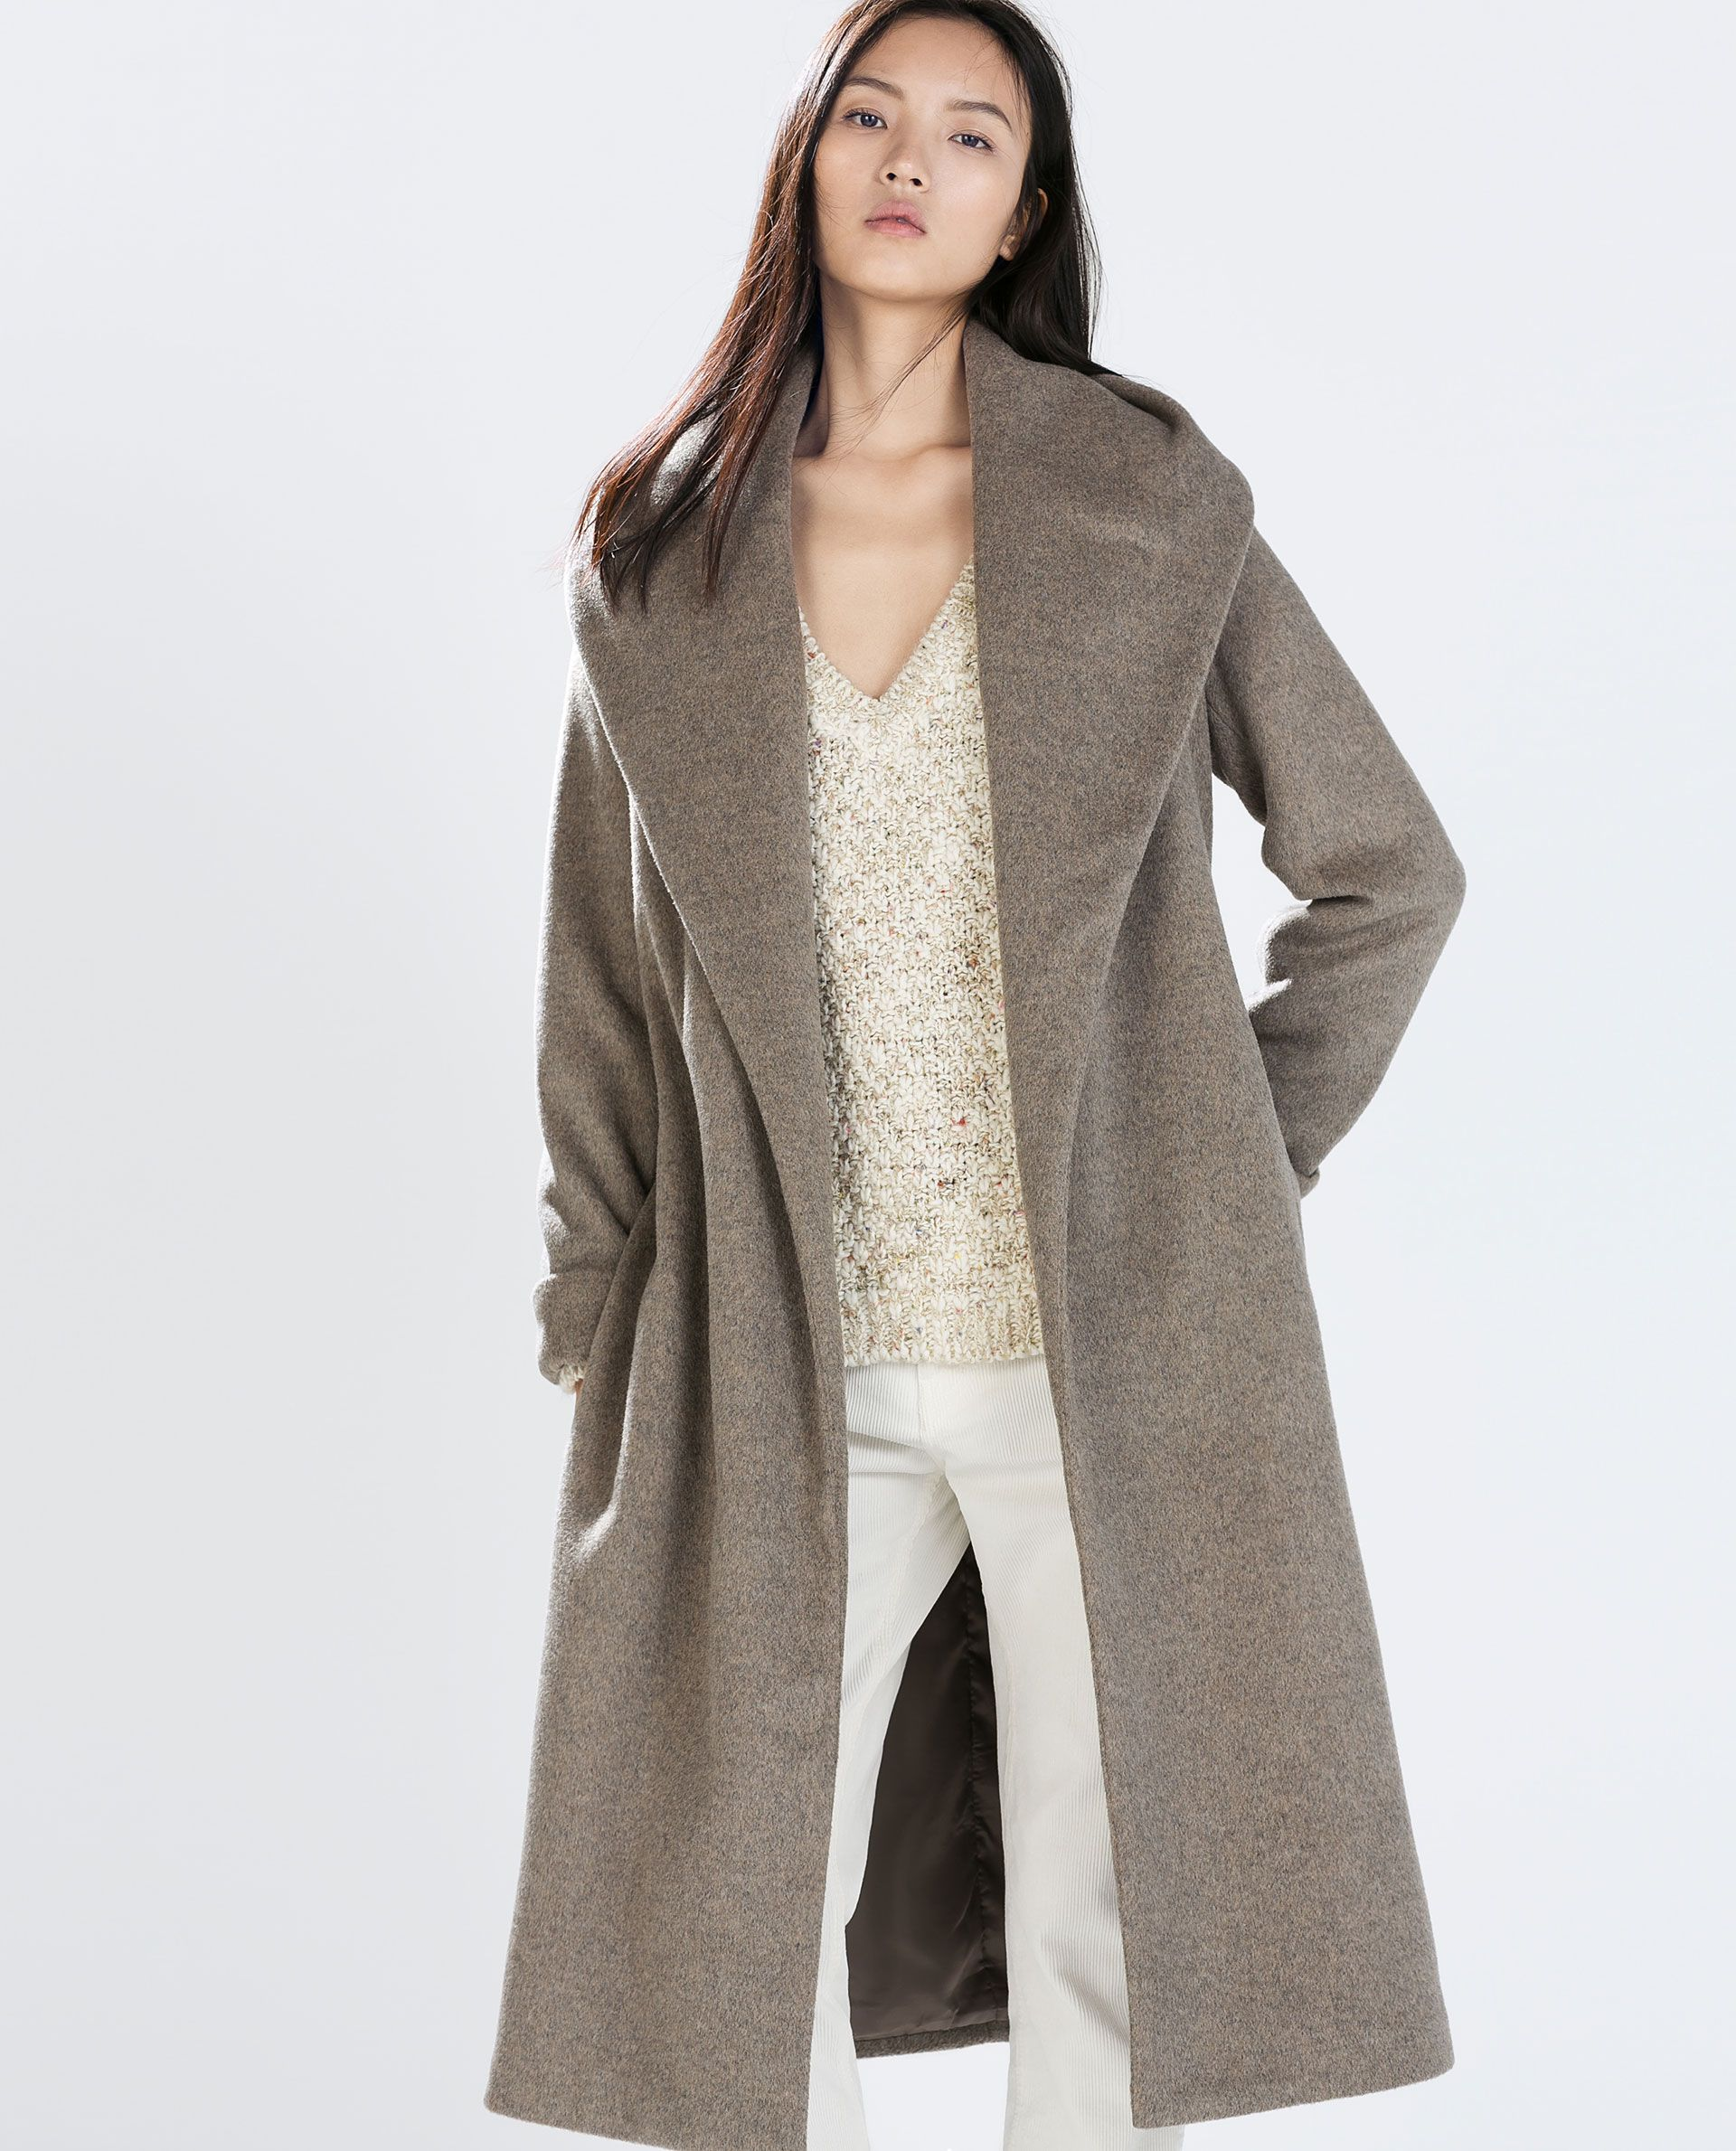 01d45898 ZARA - WOMAN - WOOL COAT WITH BELT. It's like a chic robe! Perfect to throw  on over something casual plus instant outfit upgrade :)